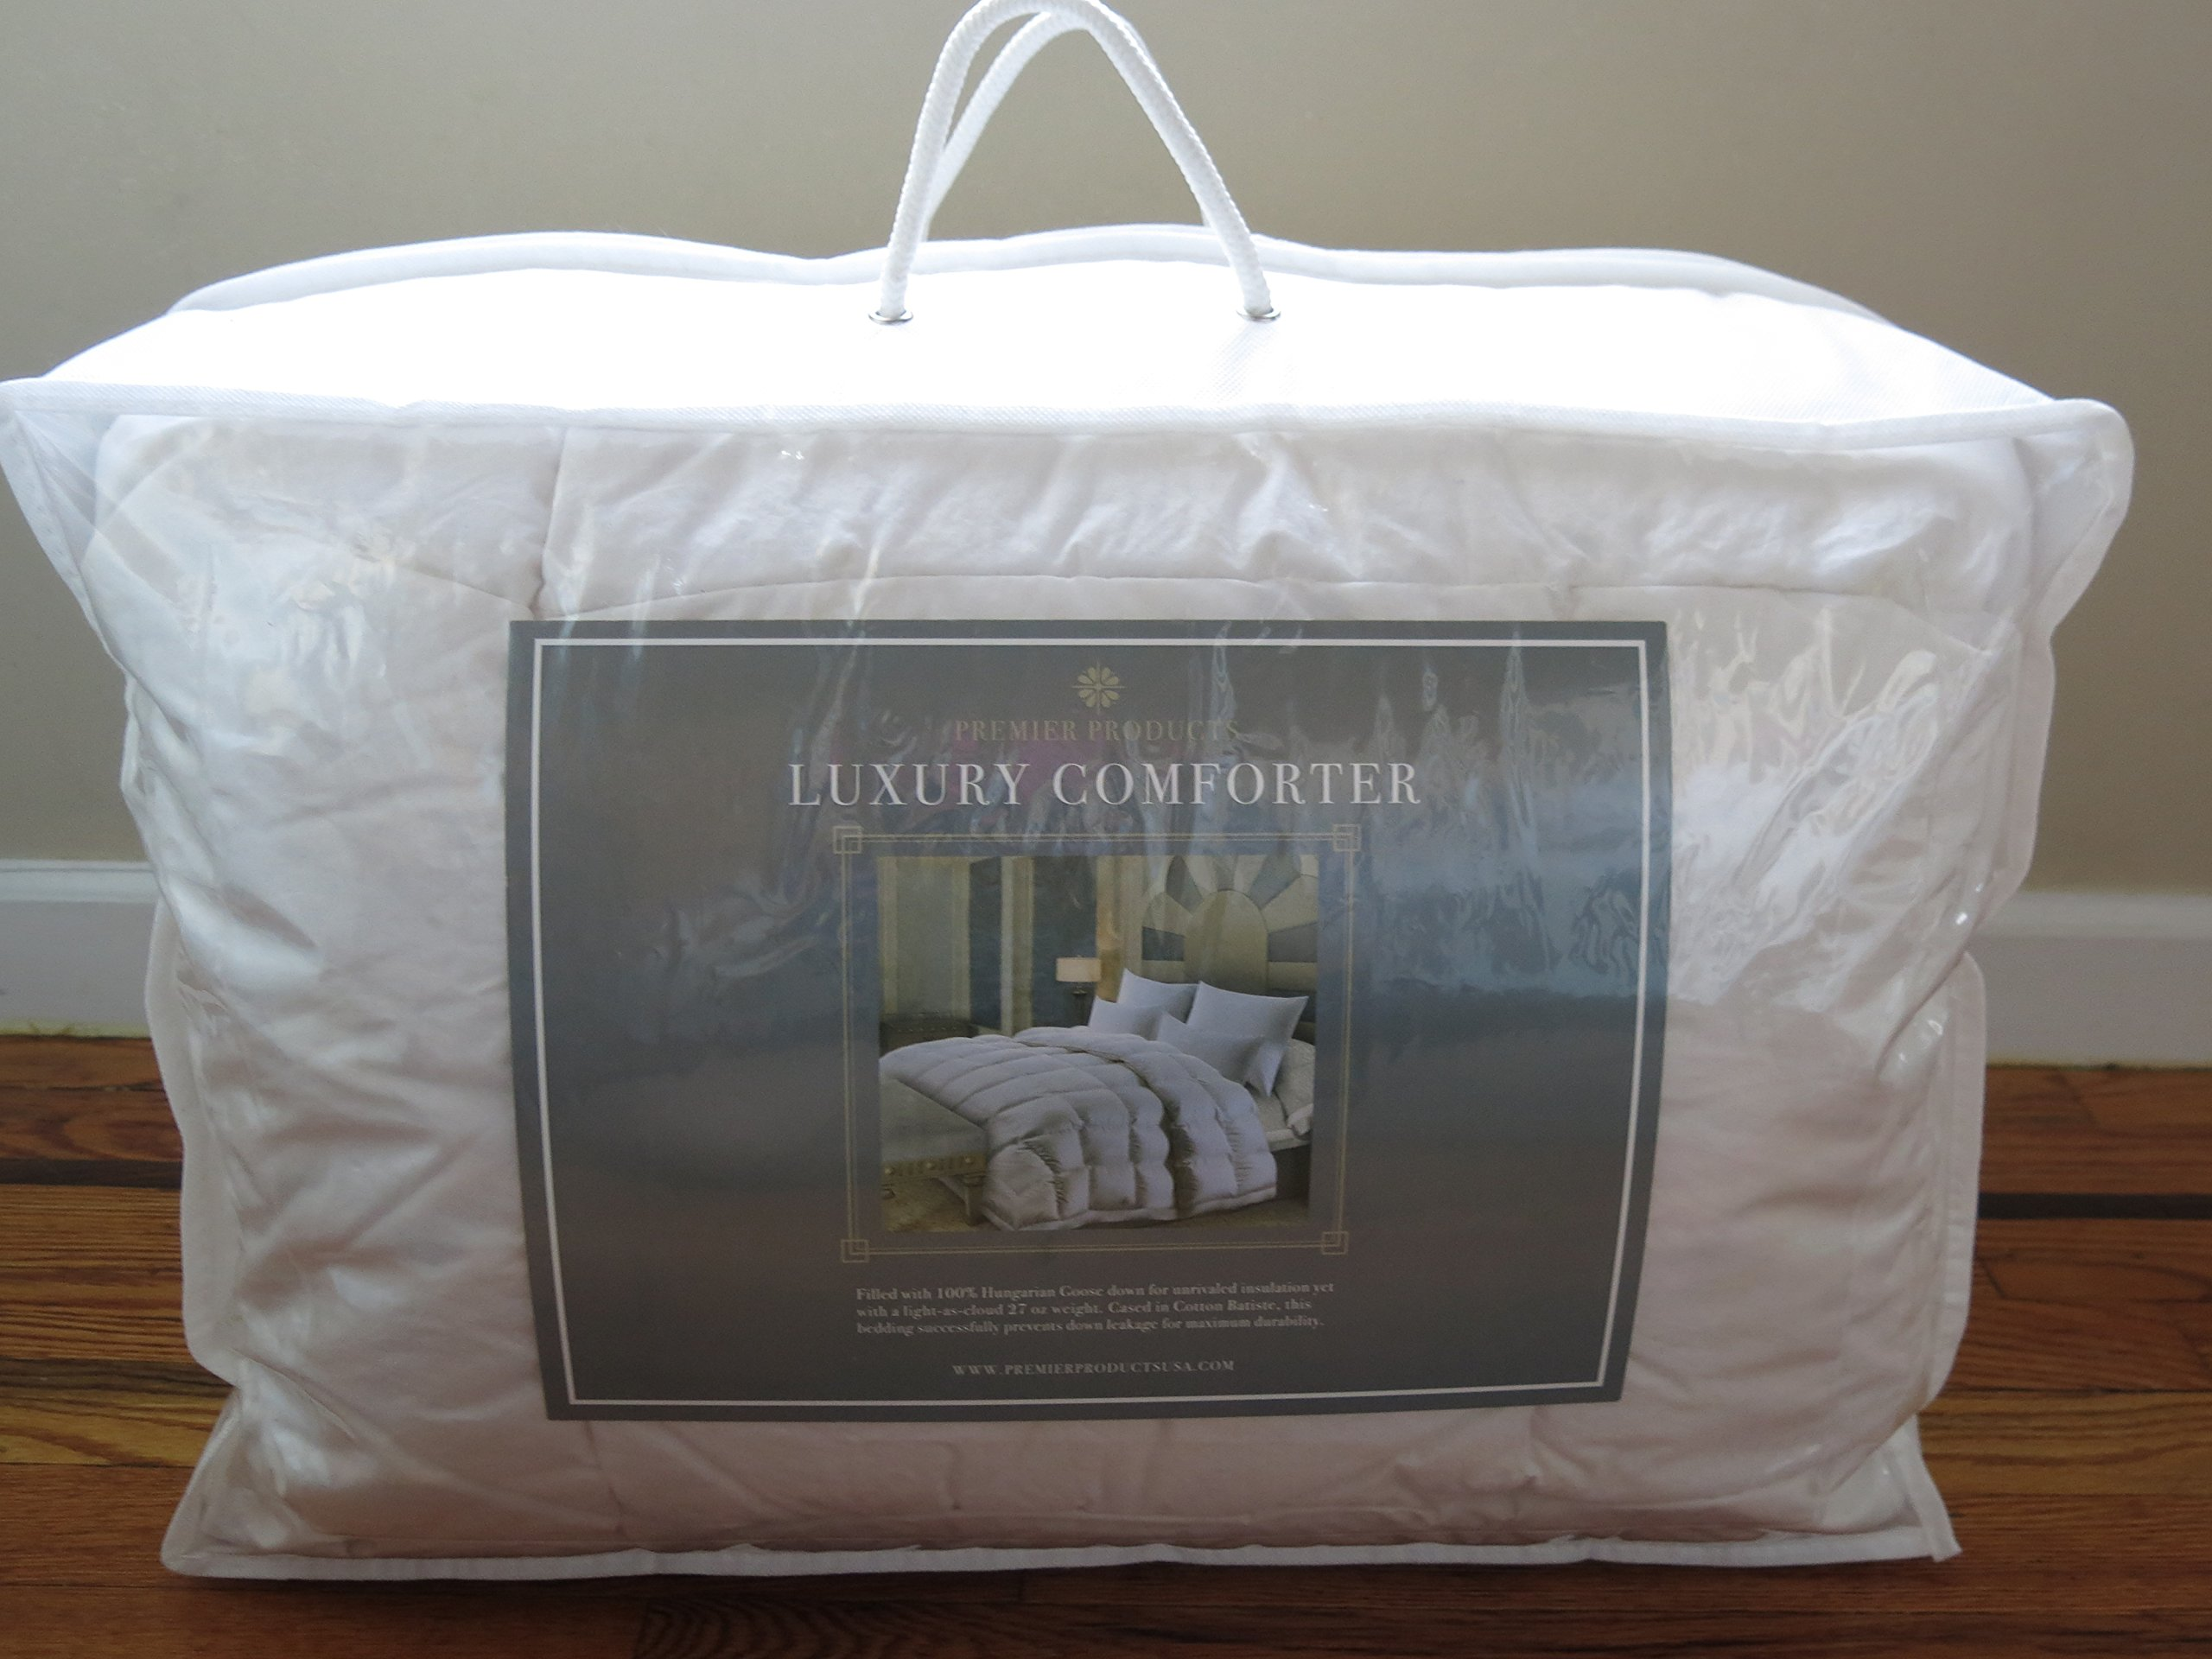 Luxurious Hungarian Goose Down Comforter 700+ FIll Power Duvet. LIGHT.WARM.ALLERGY FREE (Twin)